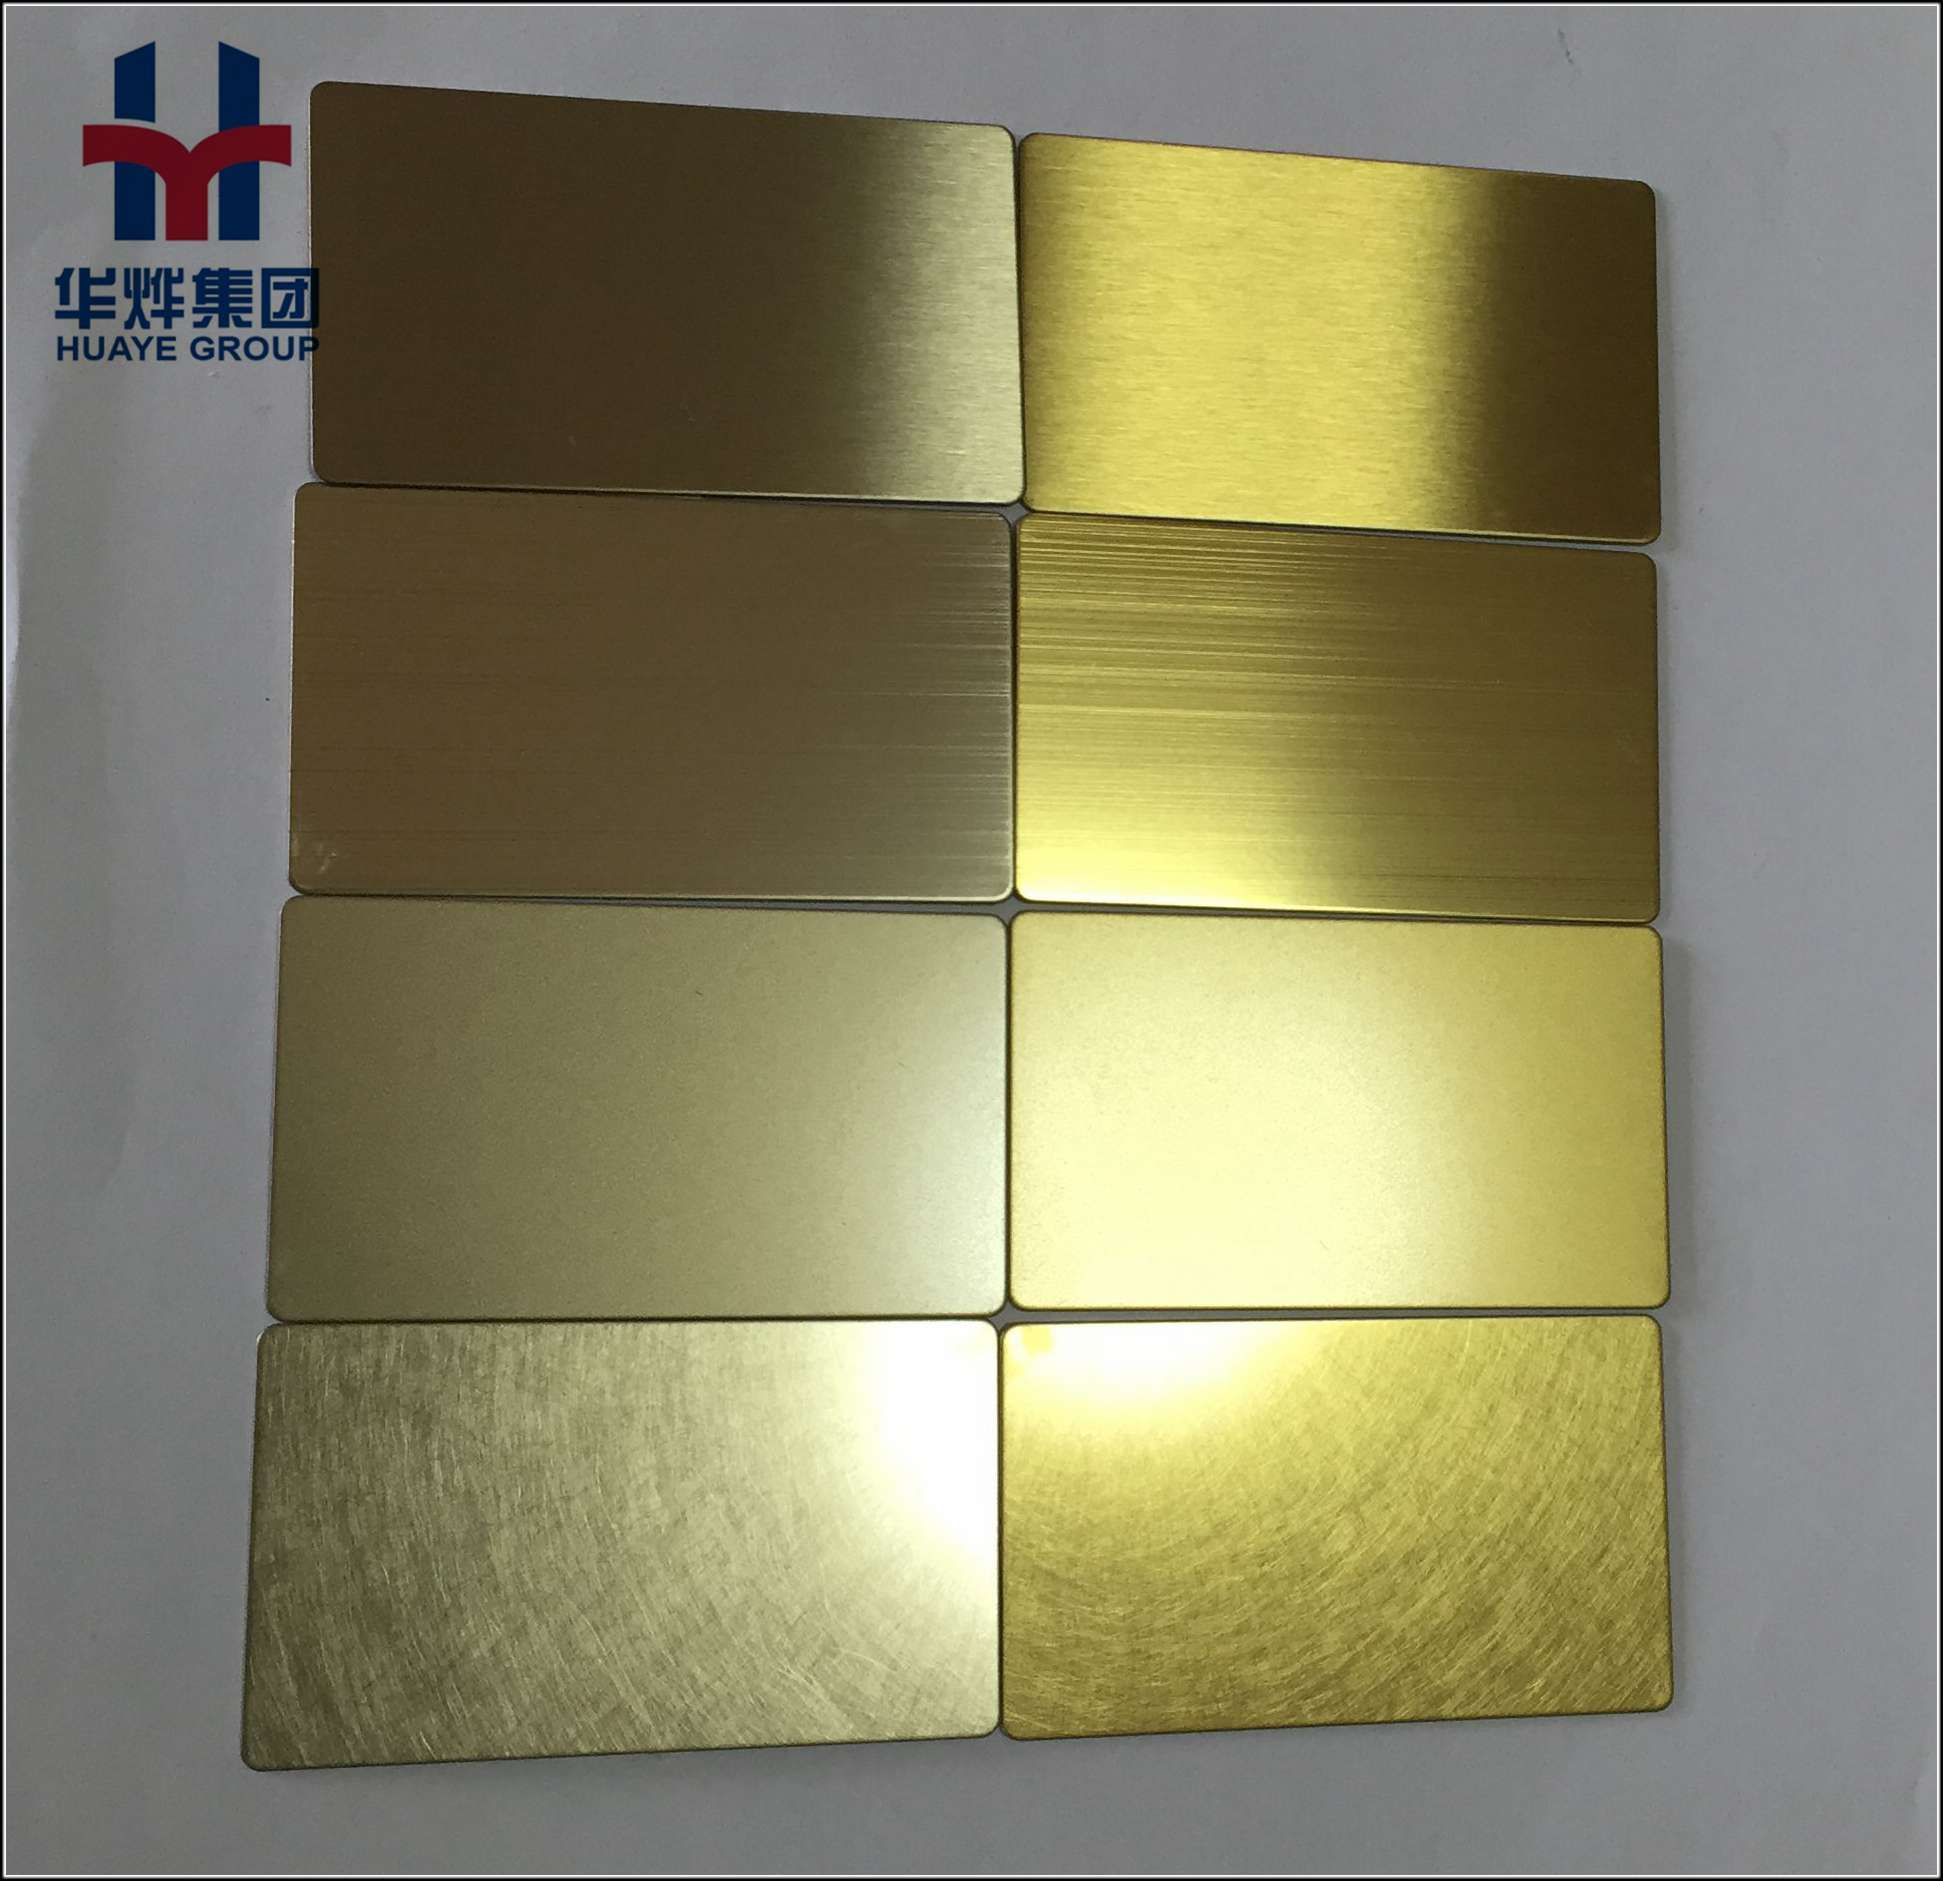 China Stainless Steel Color Decorative Sheet/ Panel - China ...